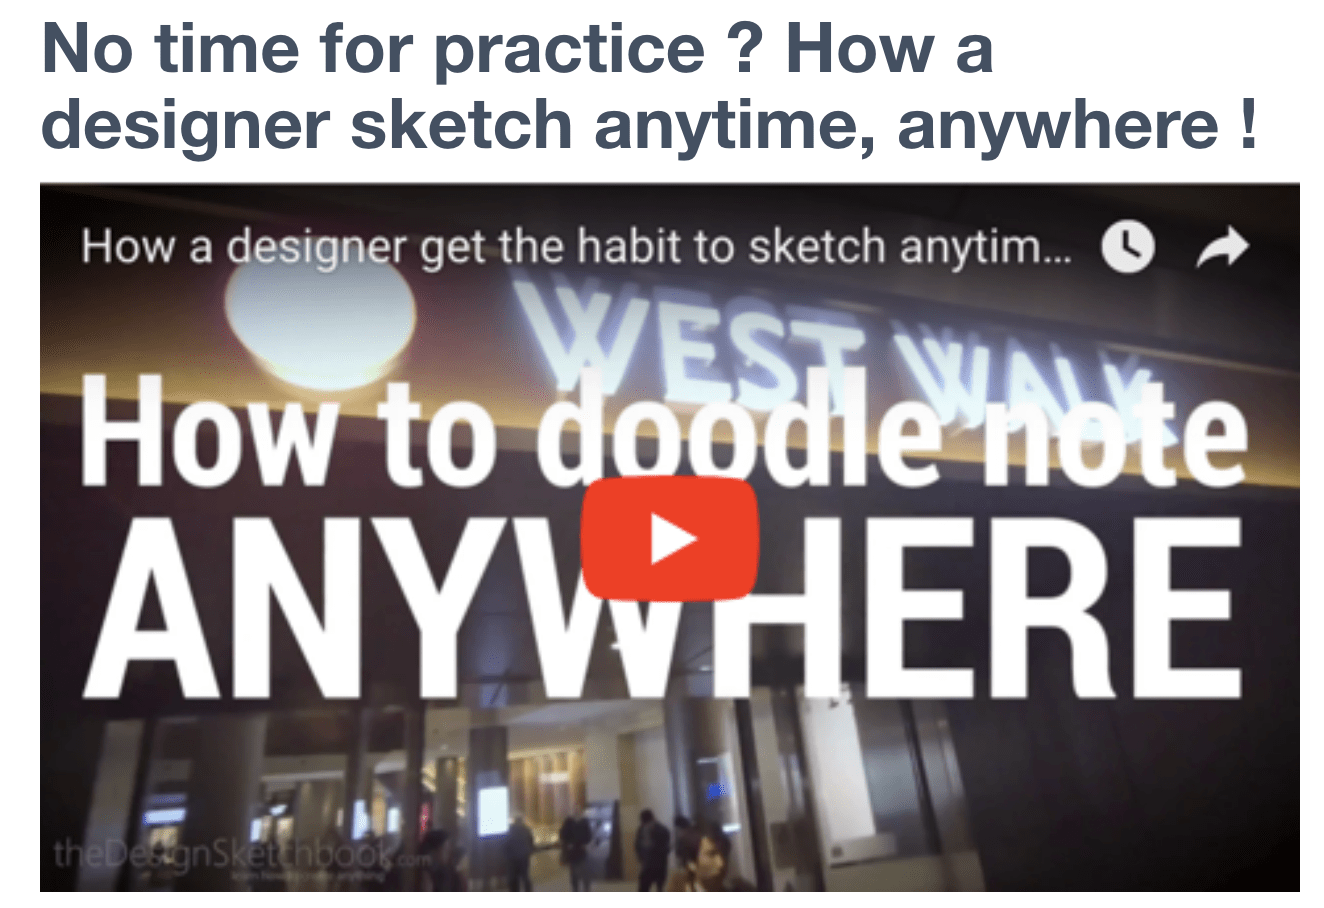 Design Sketching vlog video in Japan to doodle anytime anywhere.png